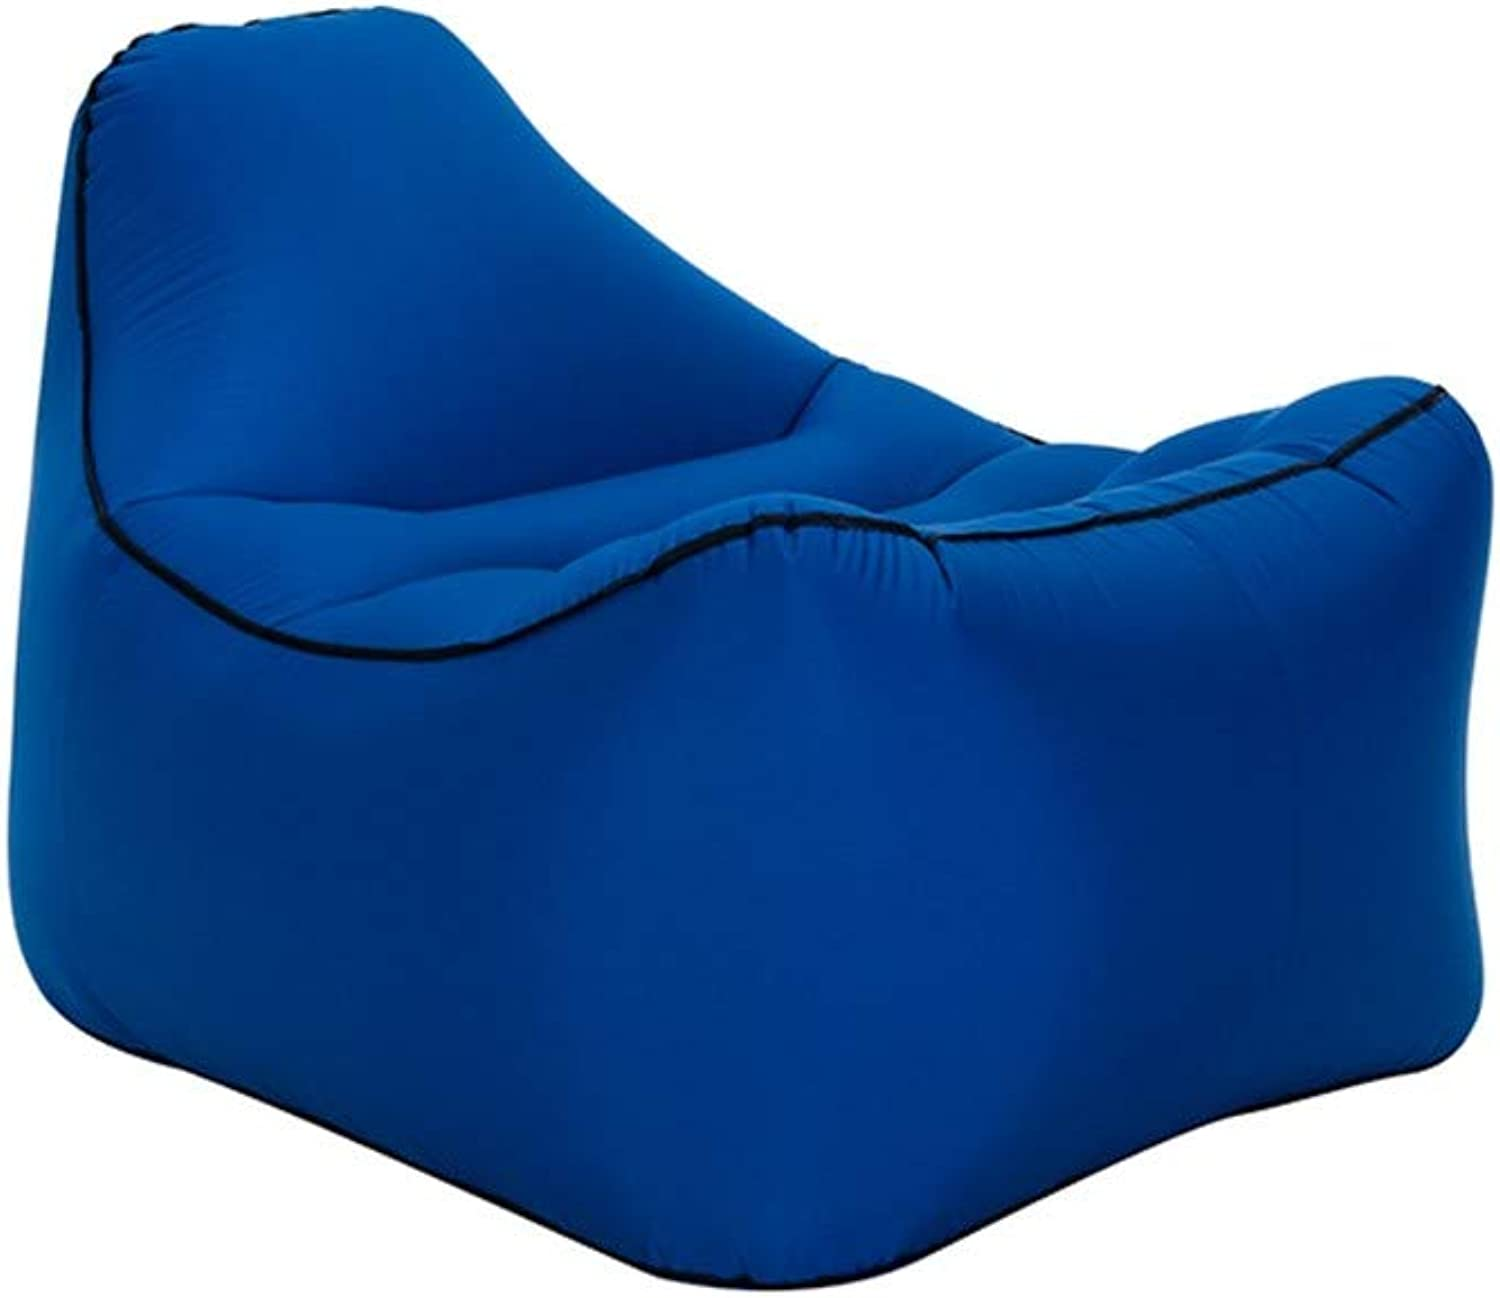 Outdoor Portable Inflatable Lazy Sofa Sheets People Inflatable Bed MoistureProof Floor Mat Water,Navy,Oversized